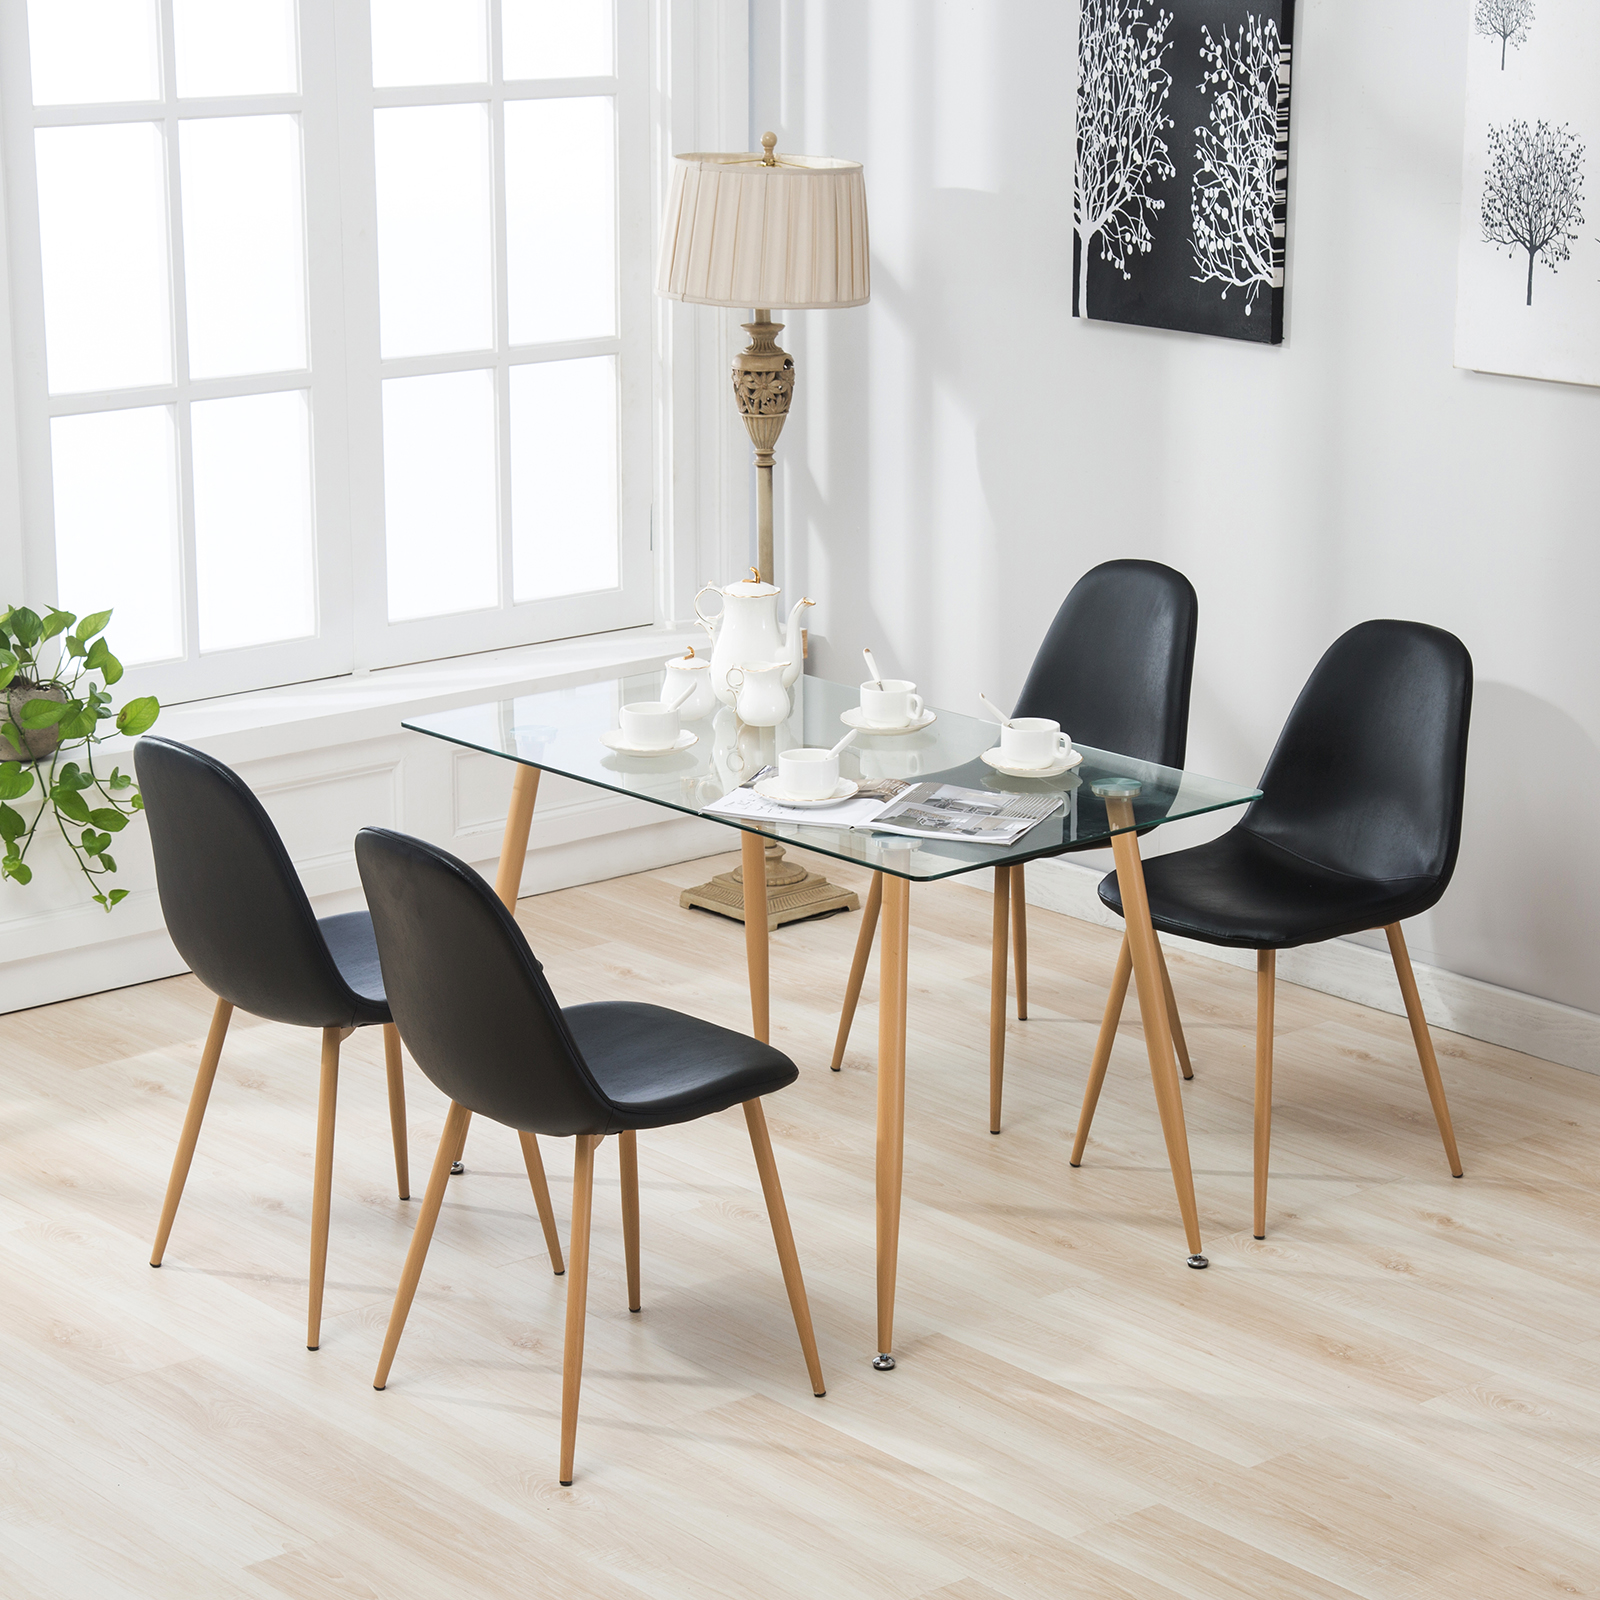 Uenjoy Dining Set Glass Top Table with Leather Chairs Kitchen Breakfast Furniture Black (Eames)